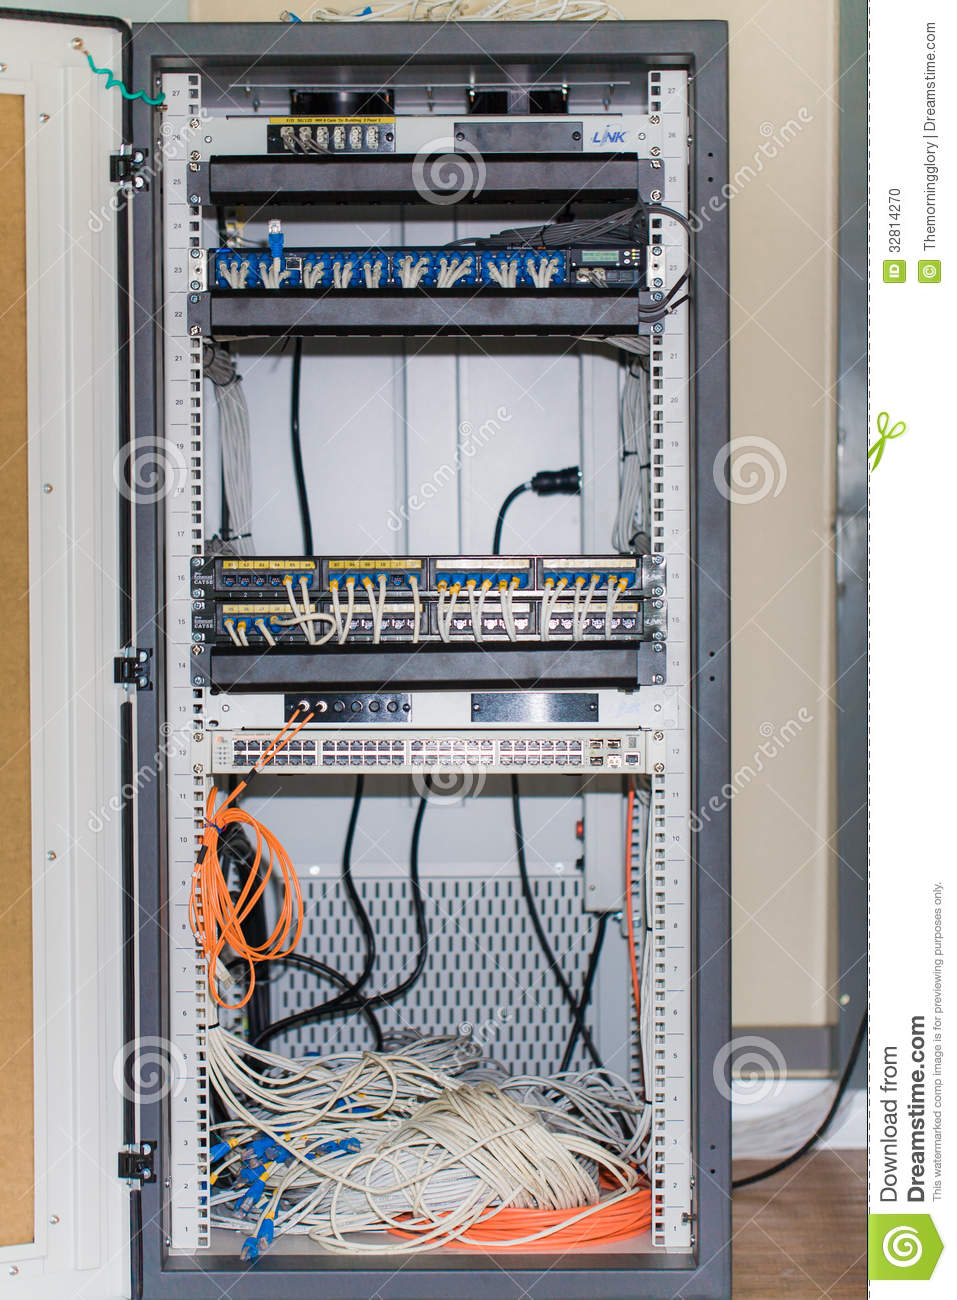 Delicieux Large Network Hub And Connected Internet Cables In Cabinet